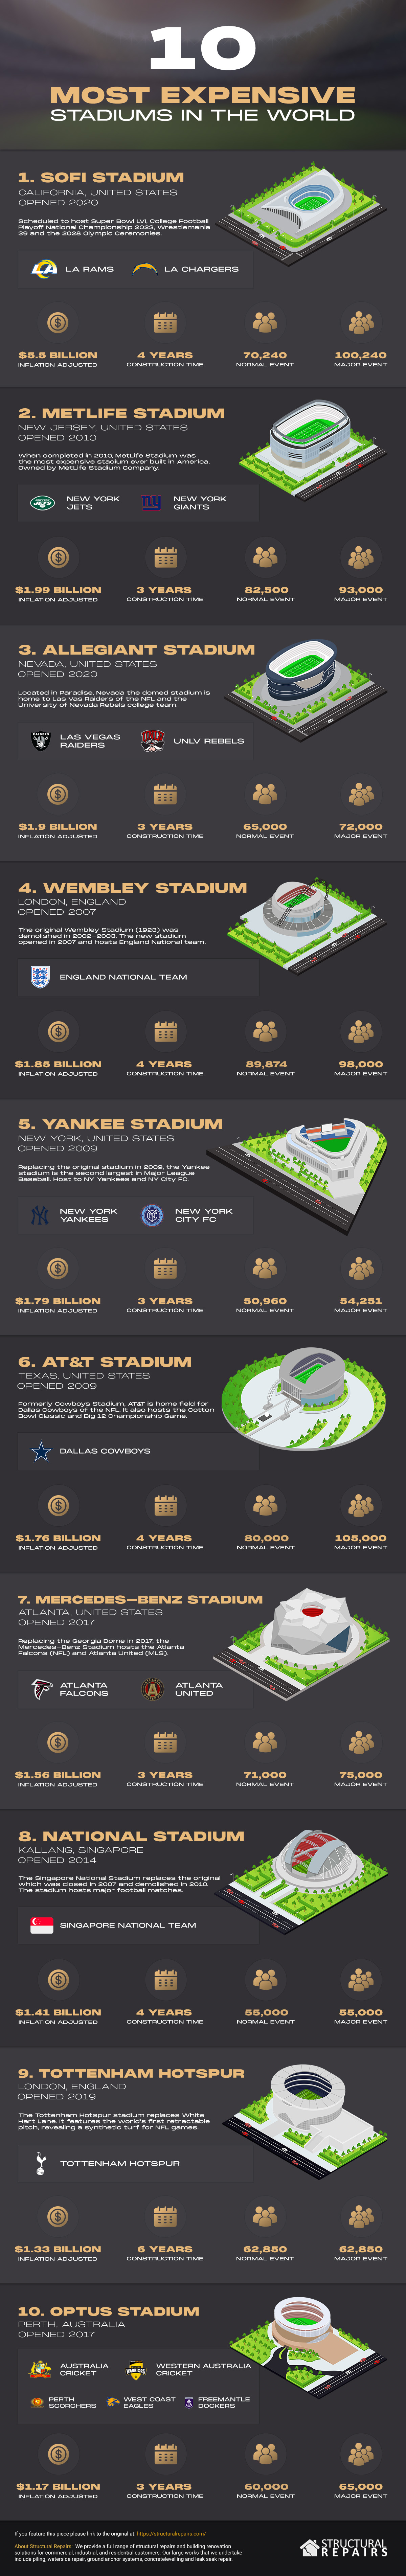 Most Expensive Stadiums